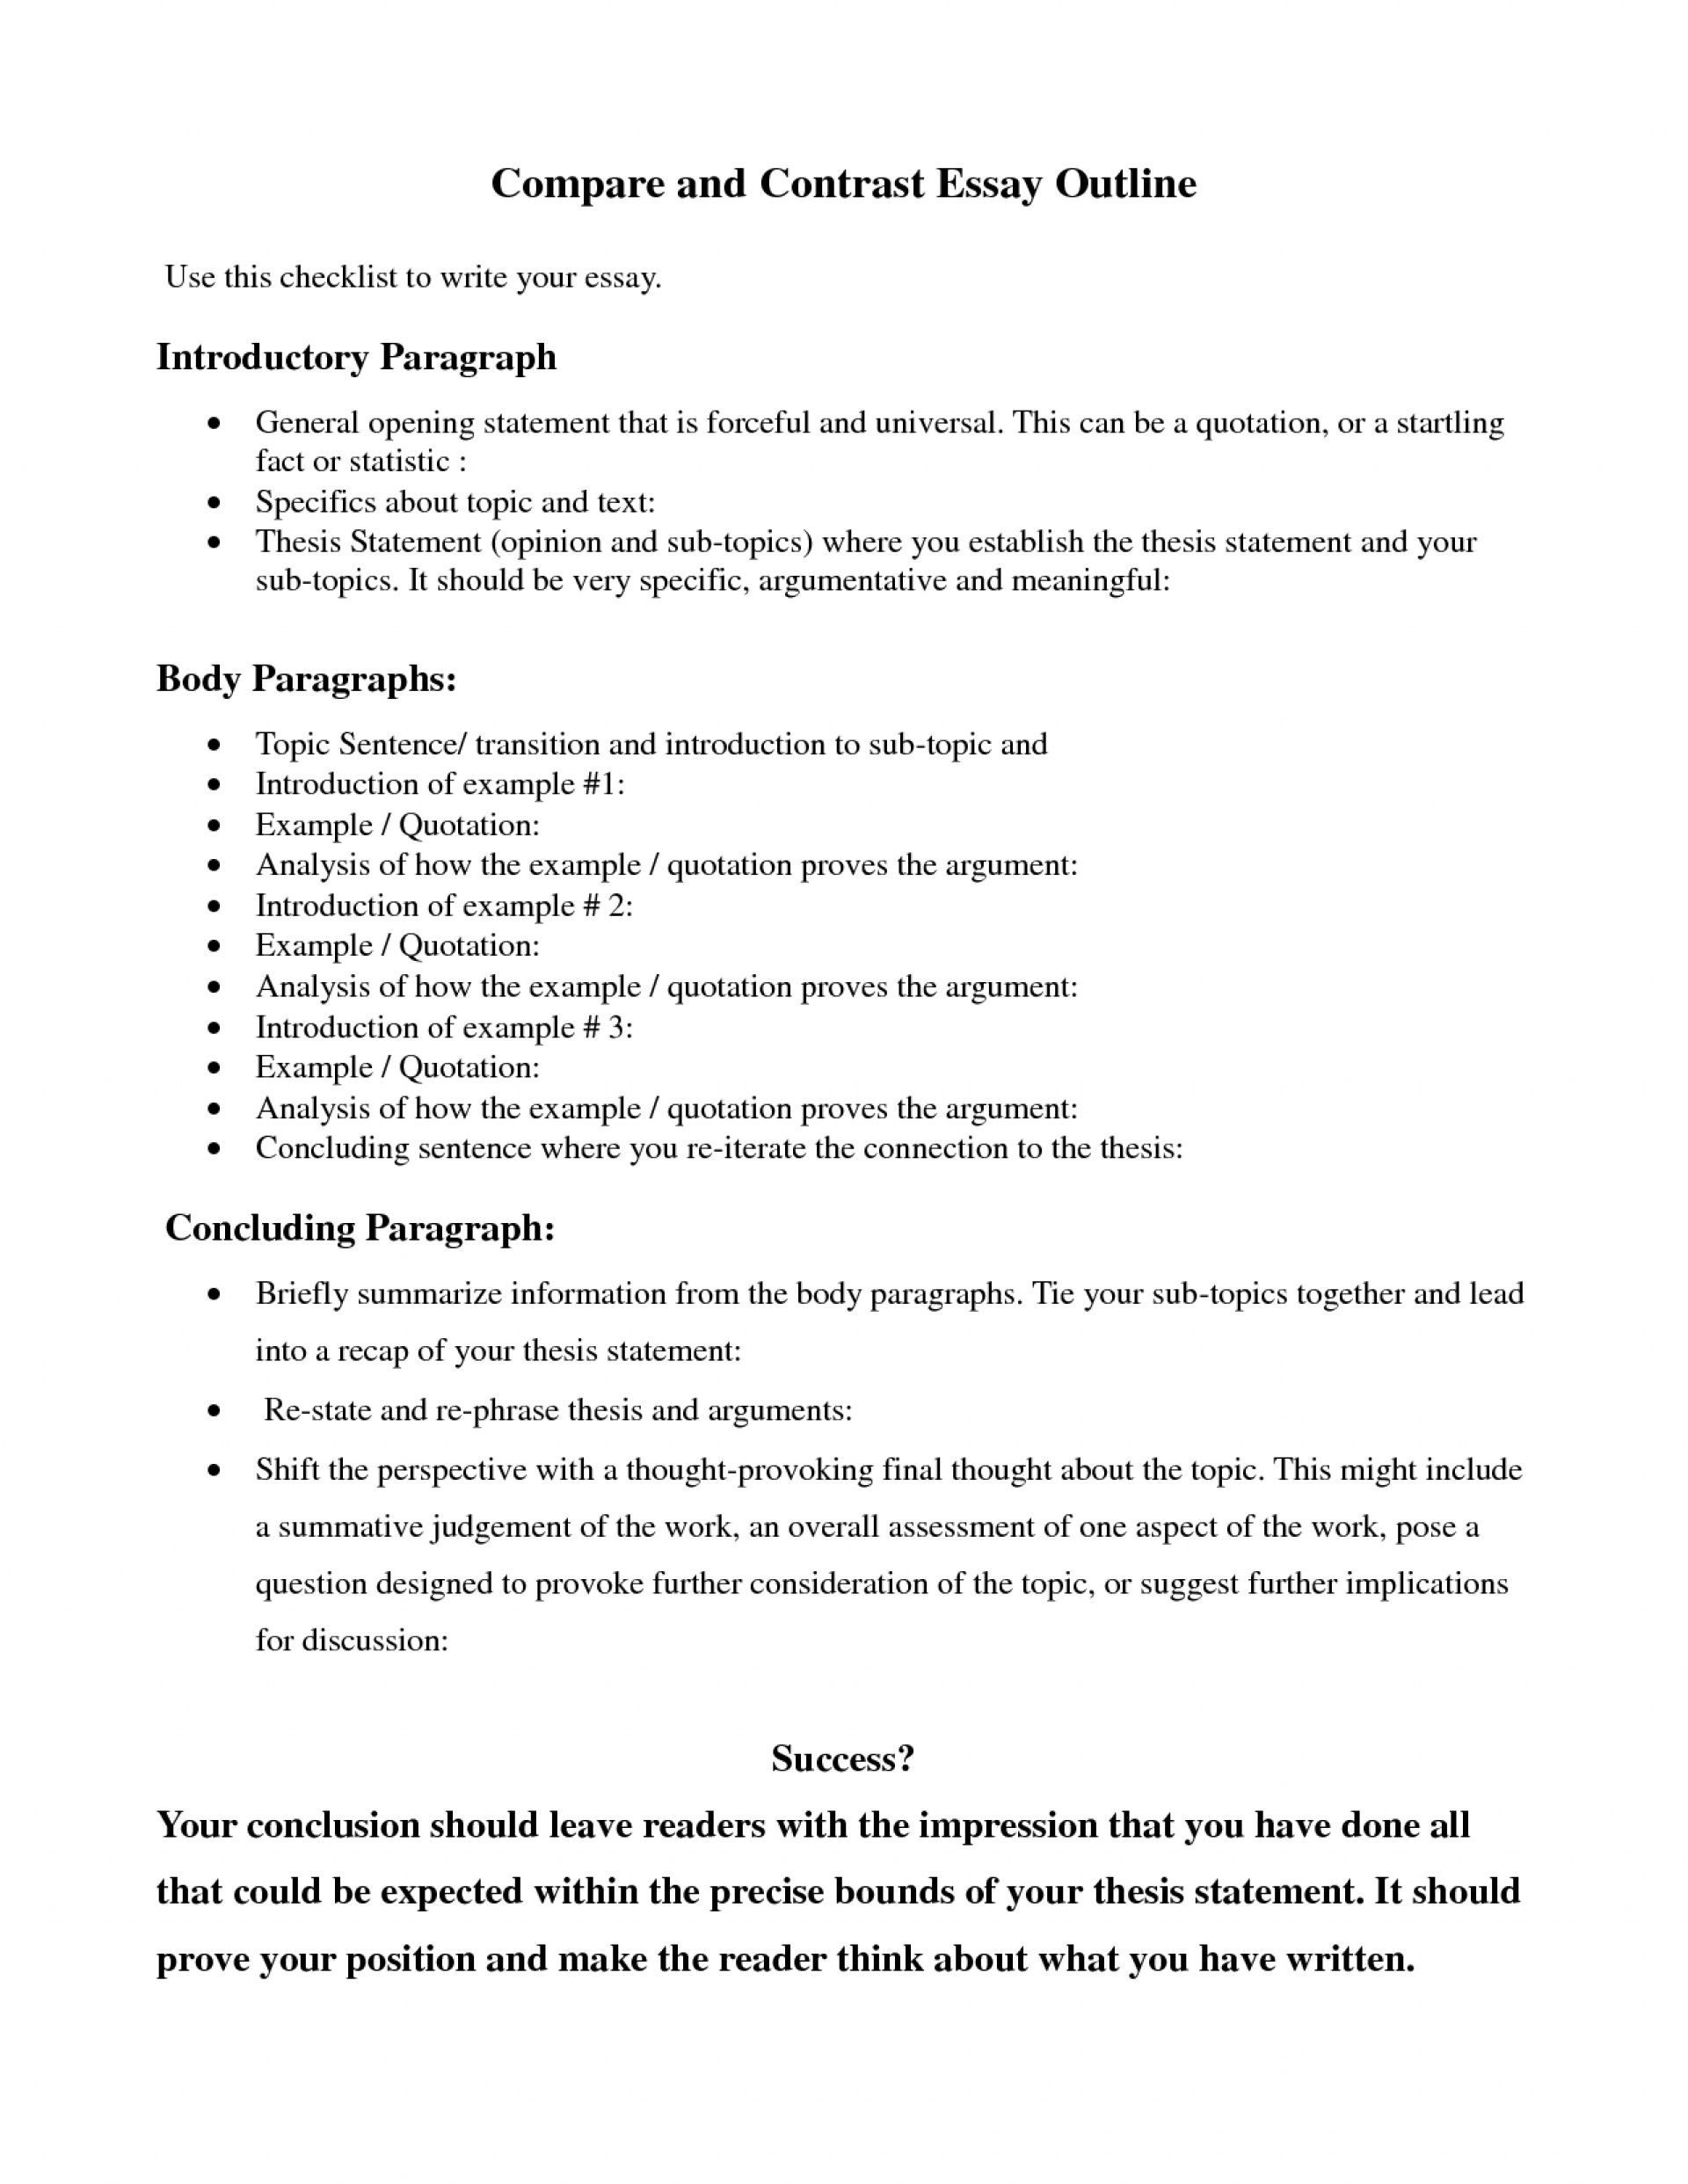 001 Essay Example Comparison And Awful Contrast Rubric Compare Template Word 1920